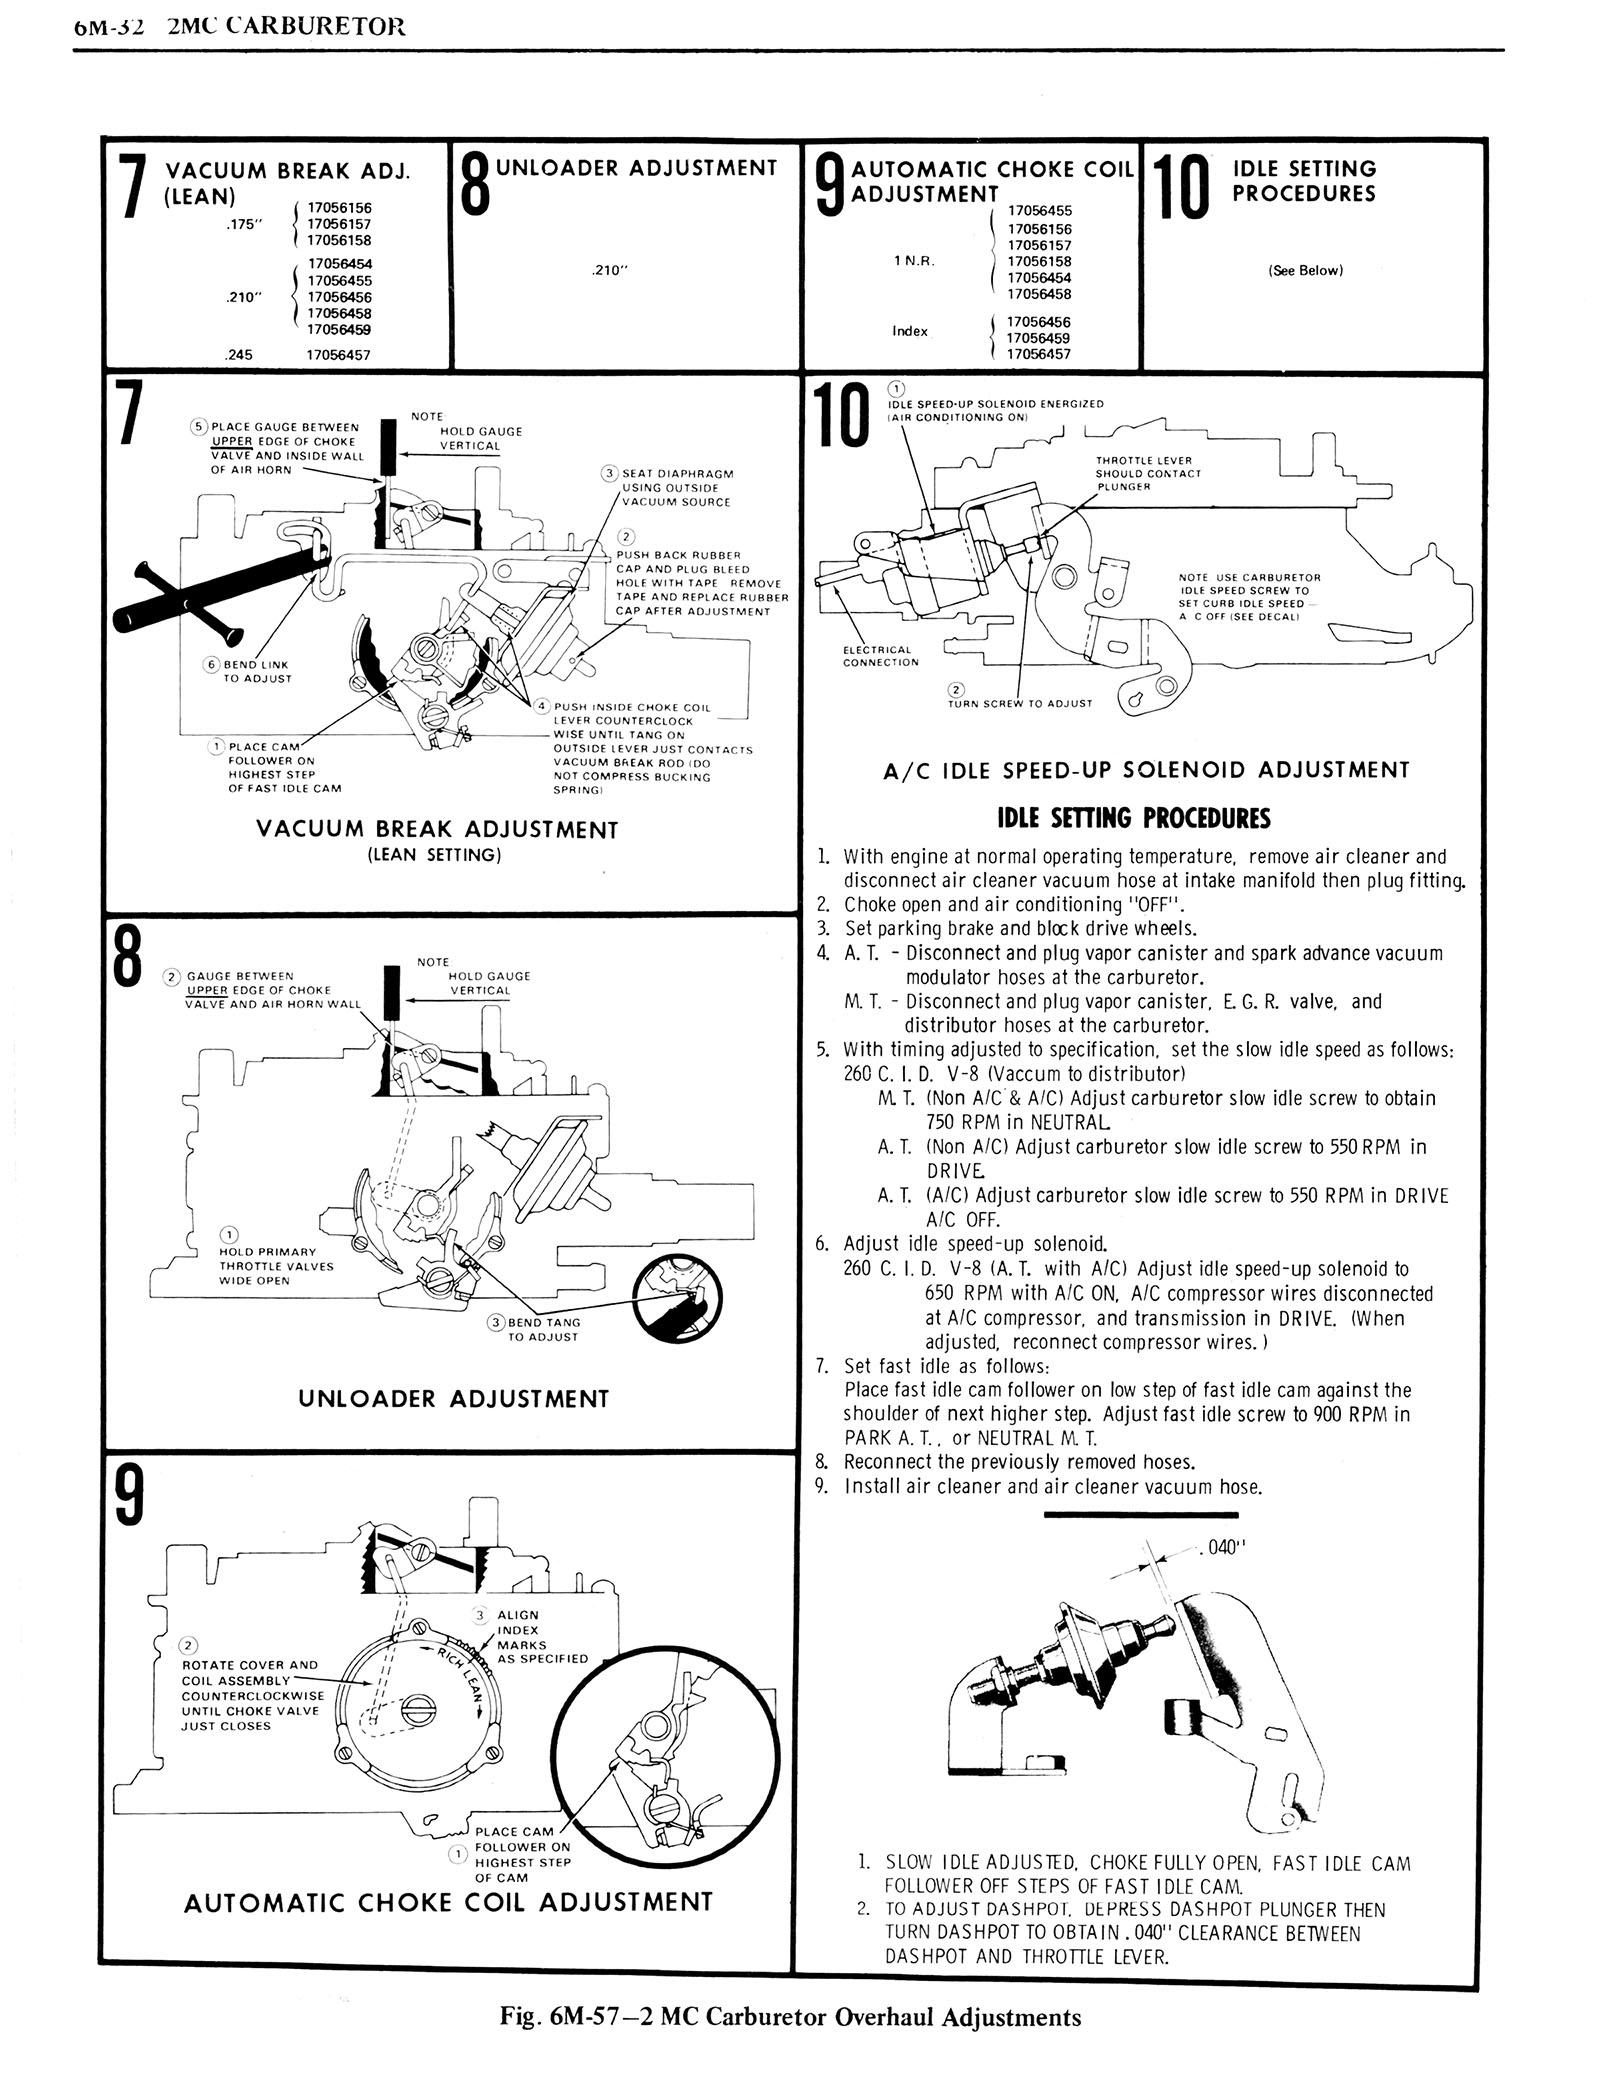 1976 Oldsmobile Service Manual page 586 of 1390